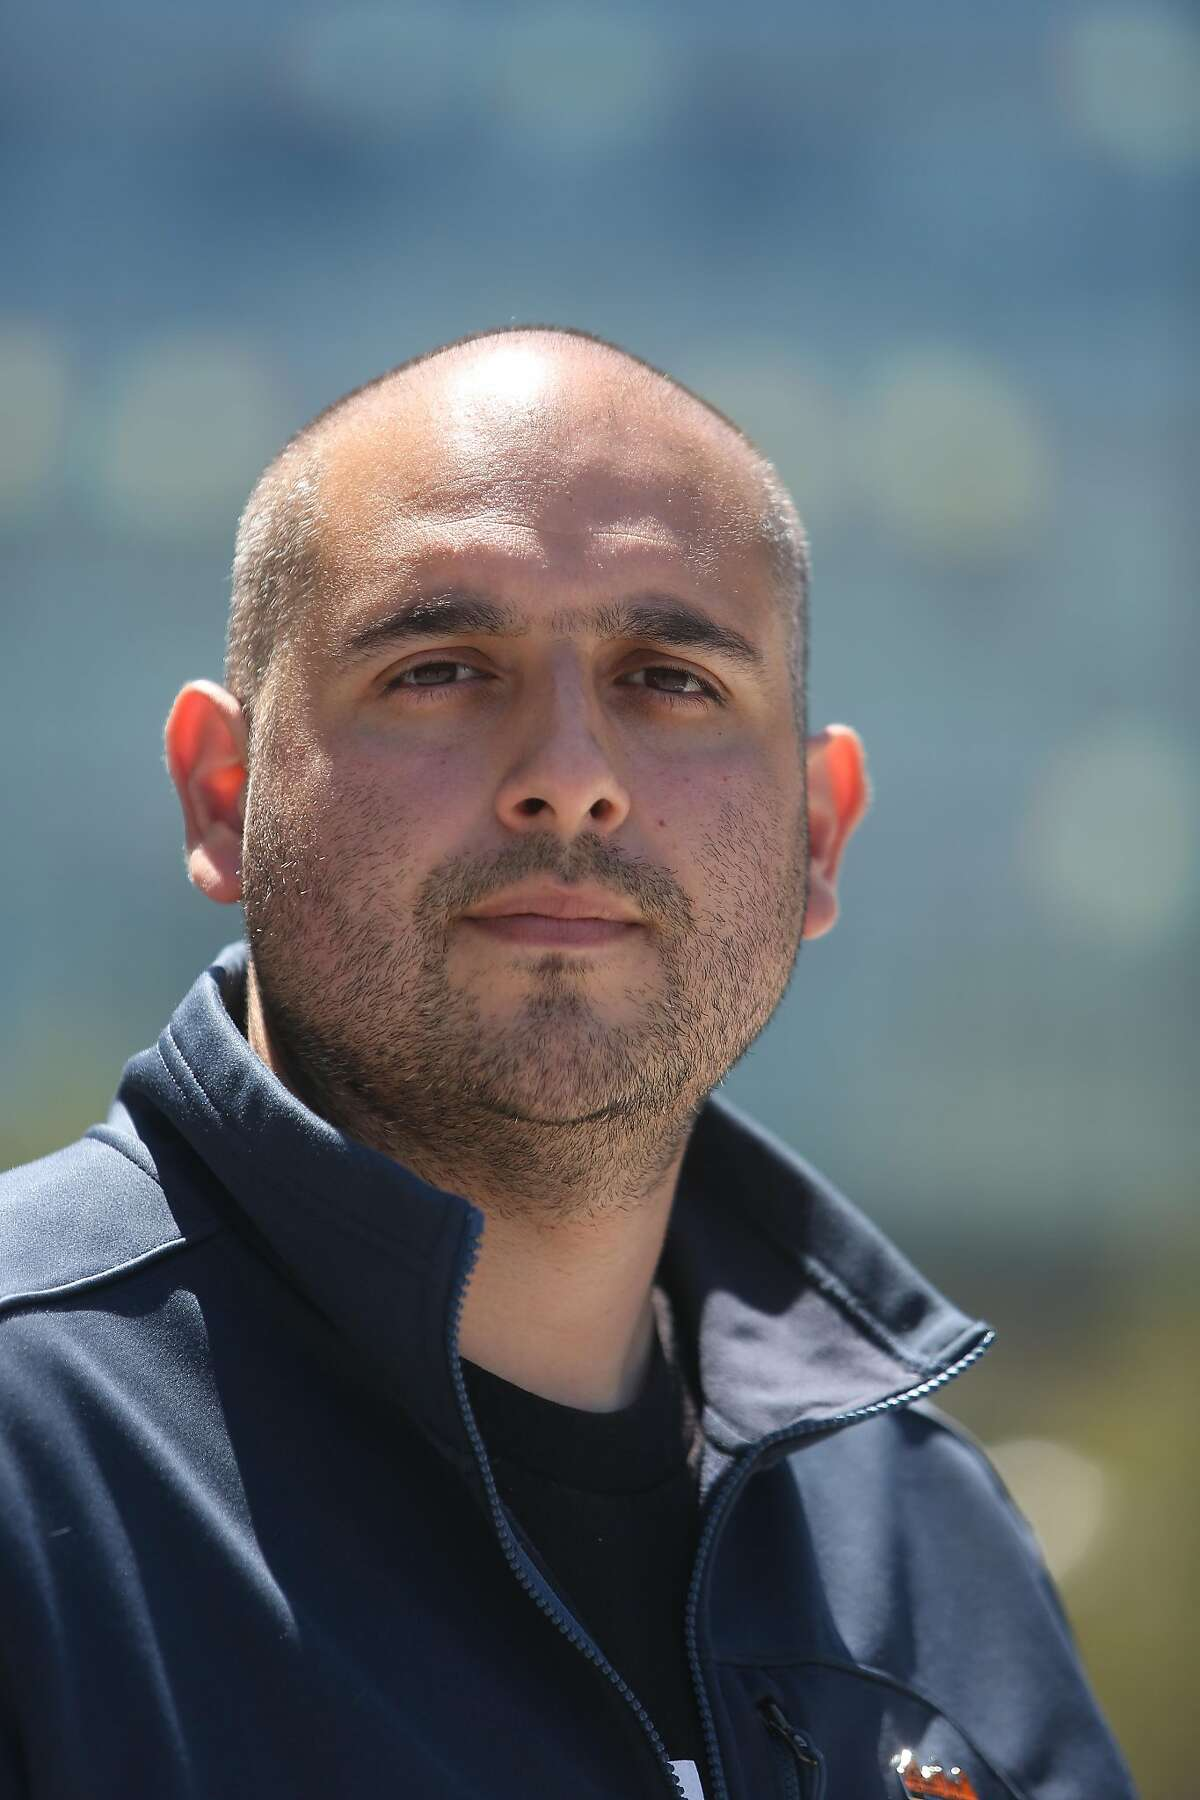 Rudy Gonzalez, executive director of the San Francisco Labor Council, stands for a portrait at UCSF Medical Center at Mission Bay on Wednesday, July 29, 2020 in San Francisco, Calif.